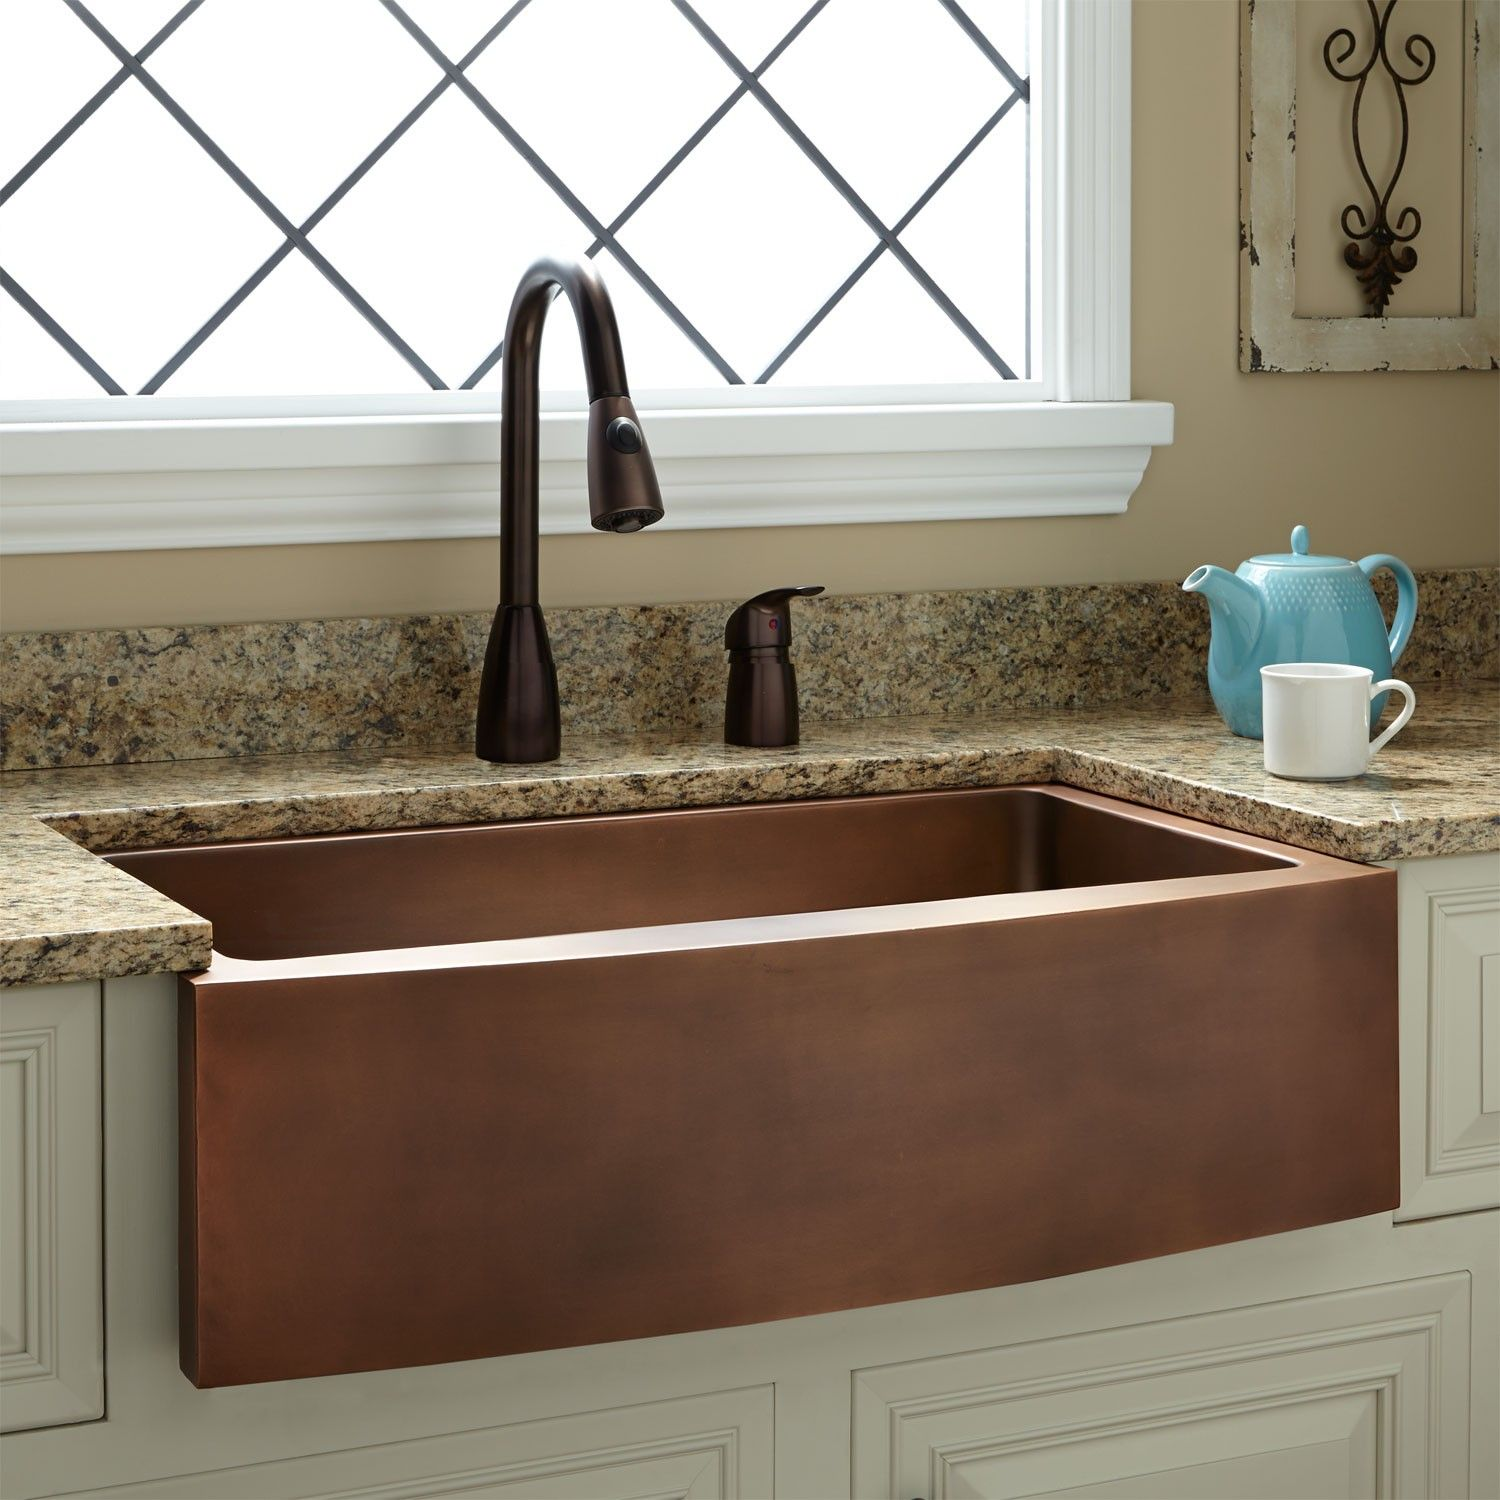 33 Kiana Curved Front Copper Farmhouse Sink Farmhouse Sinks